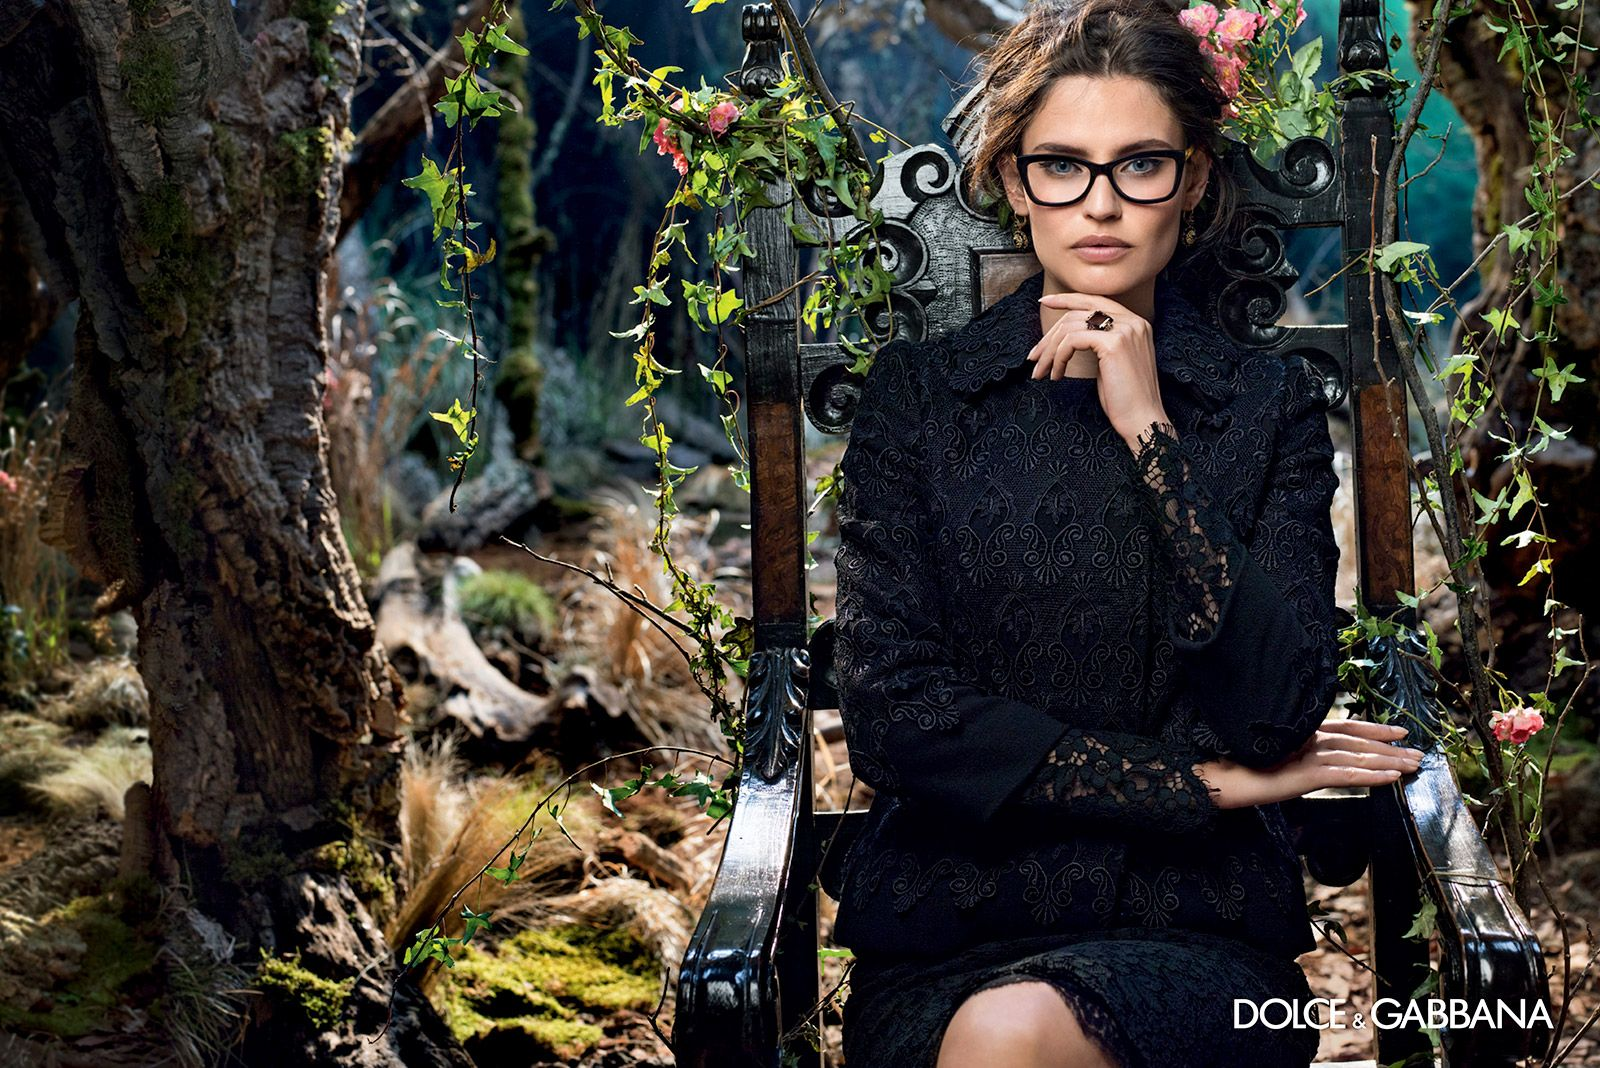 5722777a4061e Winter 2015 Eyewear Advertising Campaign shot by Domenico Dolce   dolcegabbana  dgeyewear www.dolcegabbana.com eyewear sunglasses